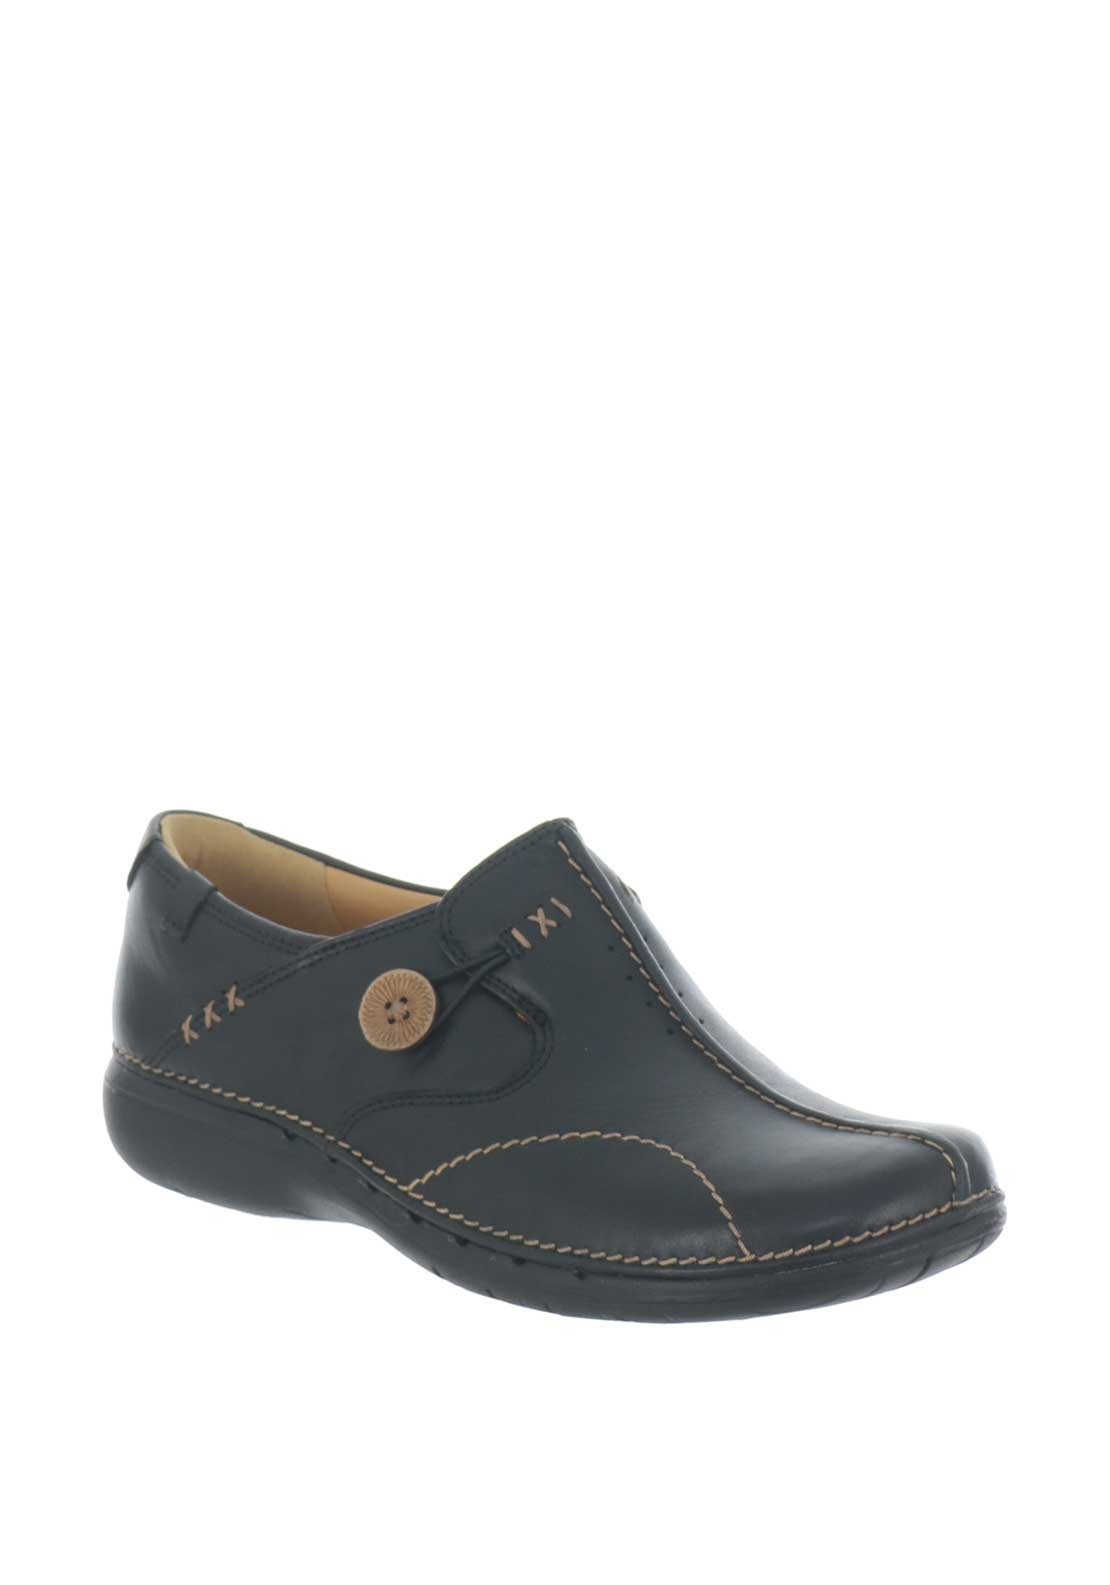 921d1b0b Clarks Womens Unloop Leather Shoe, Black